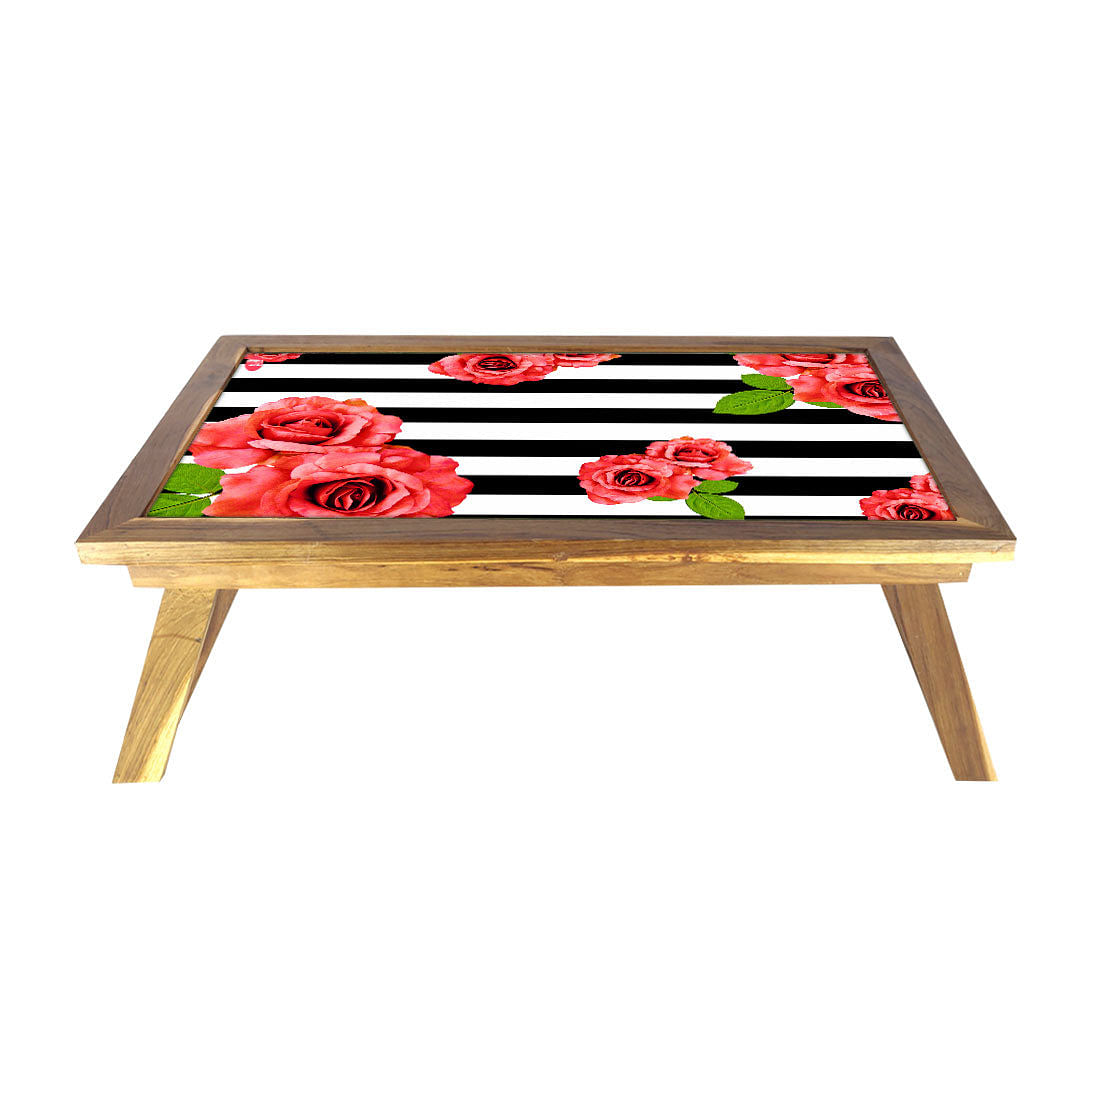 Folding Laptop Table For Bed Breakfast Tables -Floral Stripes